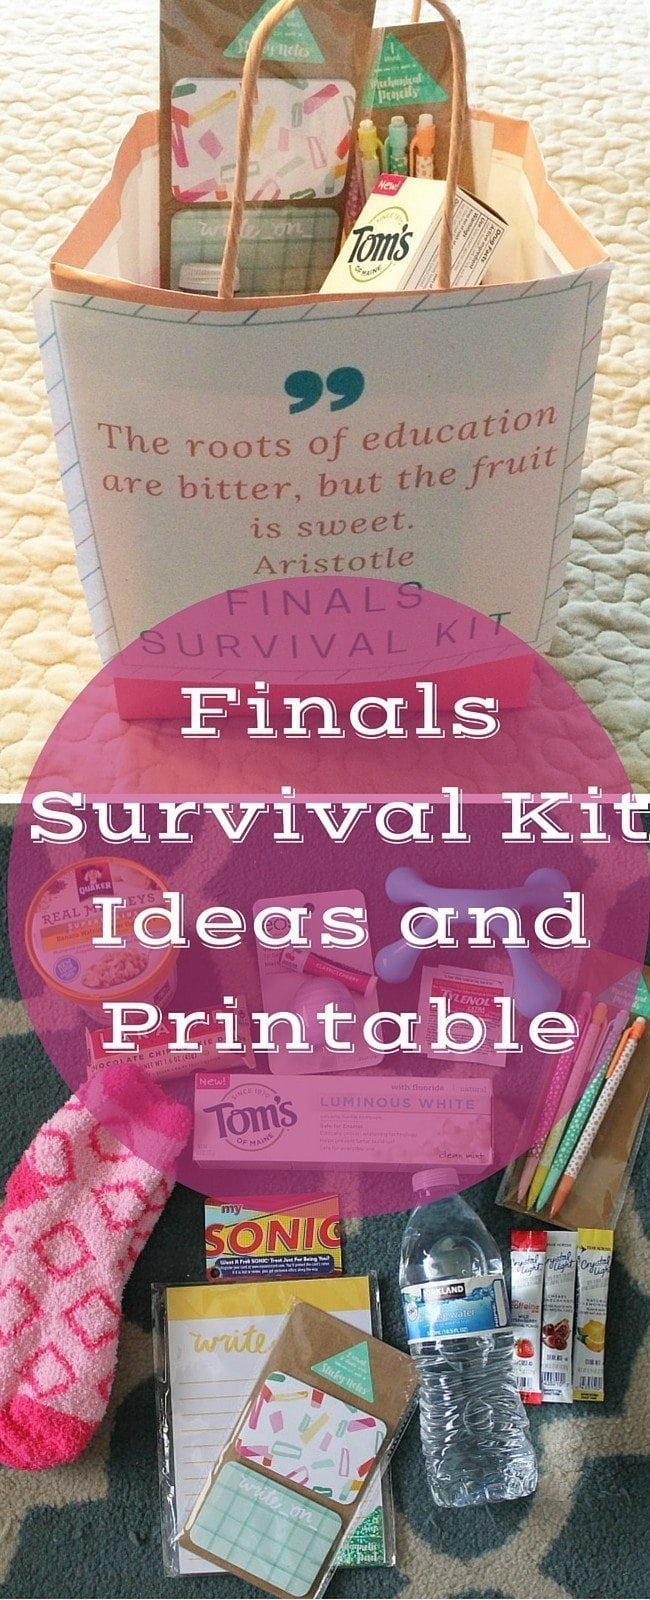 Finals Survival Kit Ideas and Printable